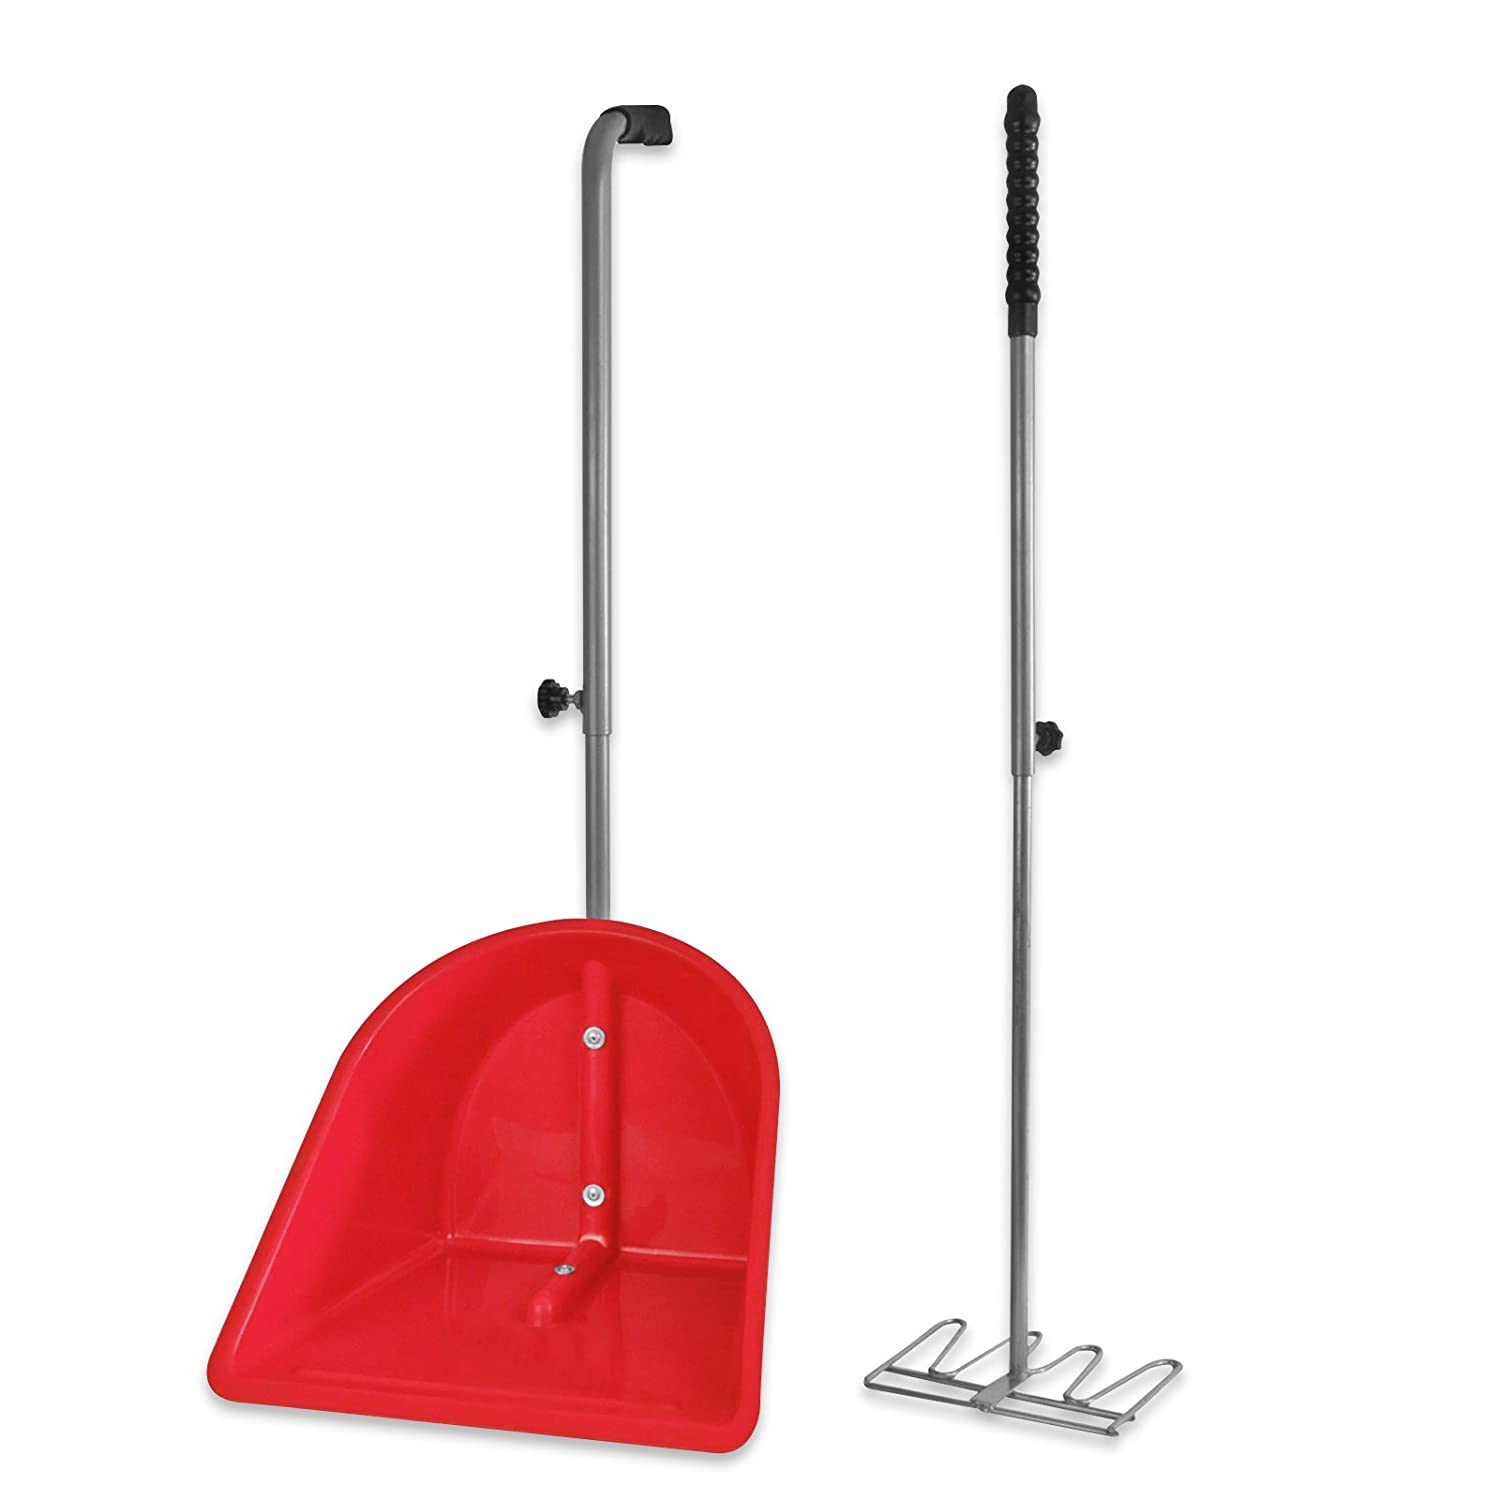 Knight Rider Horse Stable Manure Mucking Out Durable Fully Adjustable Poop Scoop with Rake AND Tigerbox® Antibacterial Pen!